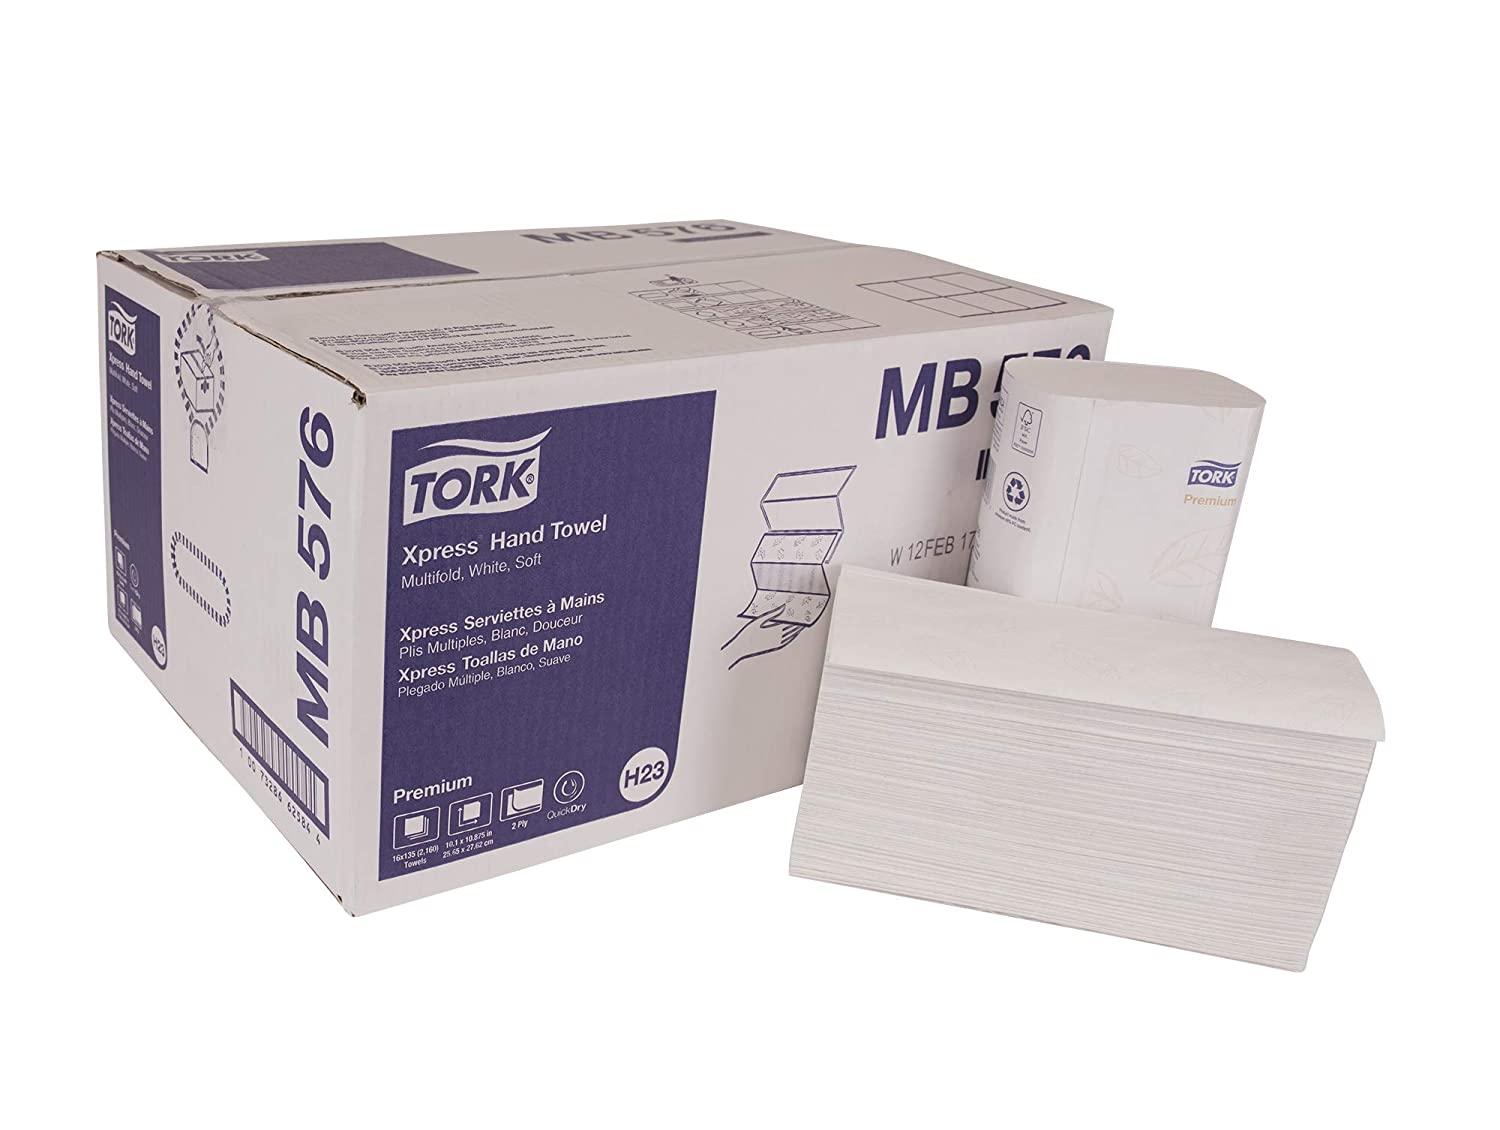 Tork Premium MB576 Soft Multifold Paper Hand Towel, 3-Panel, 2-Ply, 10.1